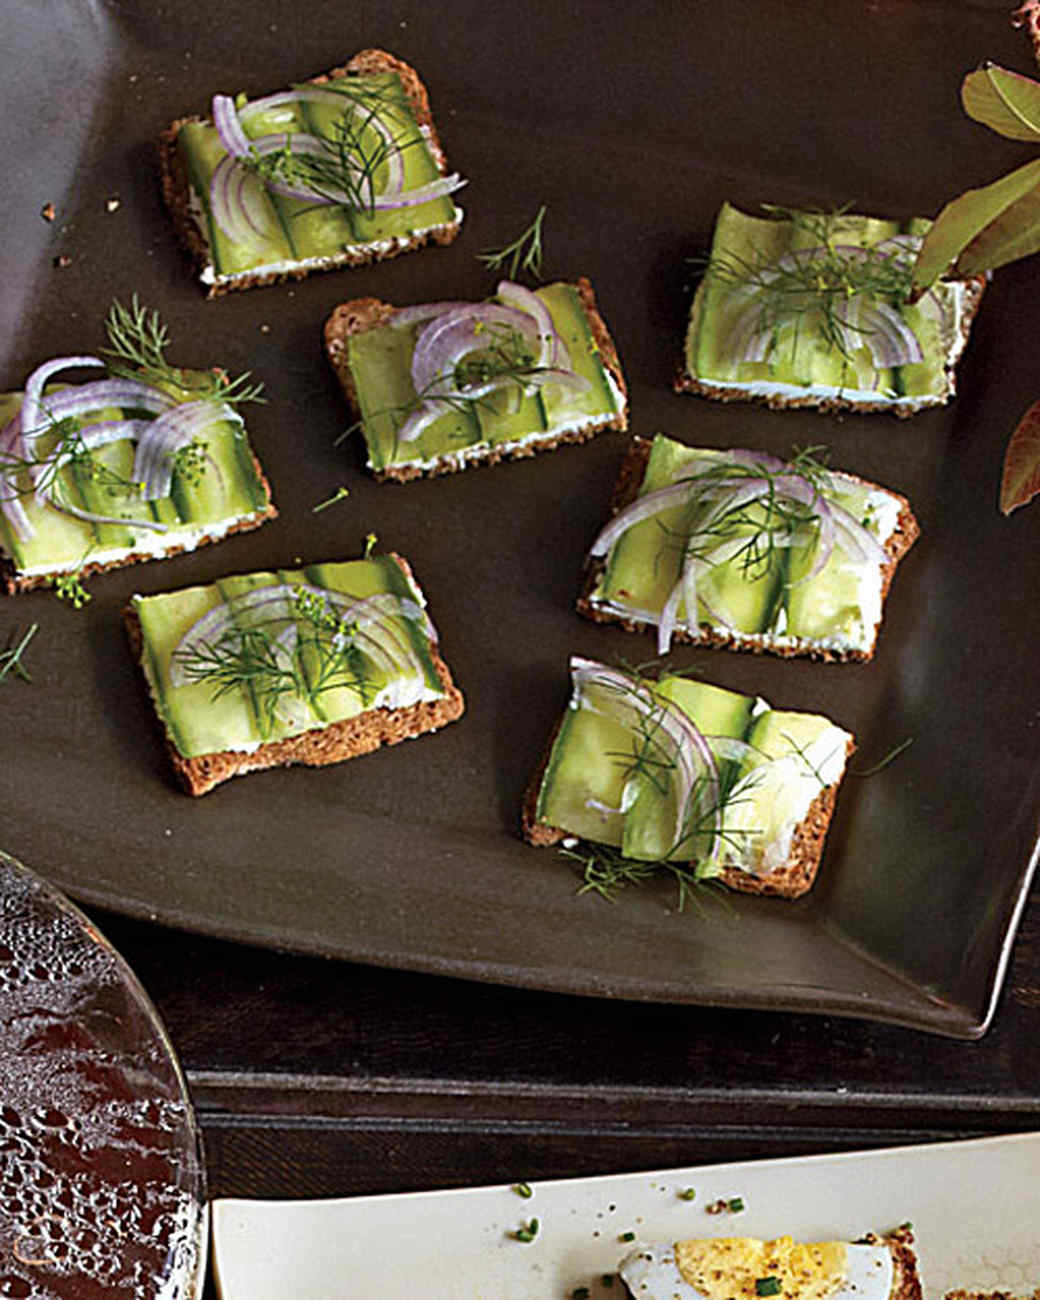 goat-cheese-cucumber-mbd108014.jpg